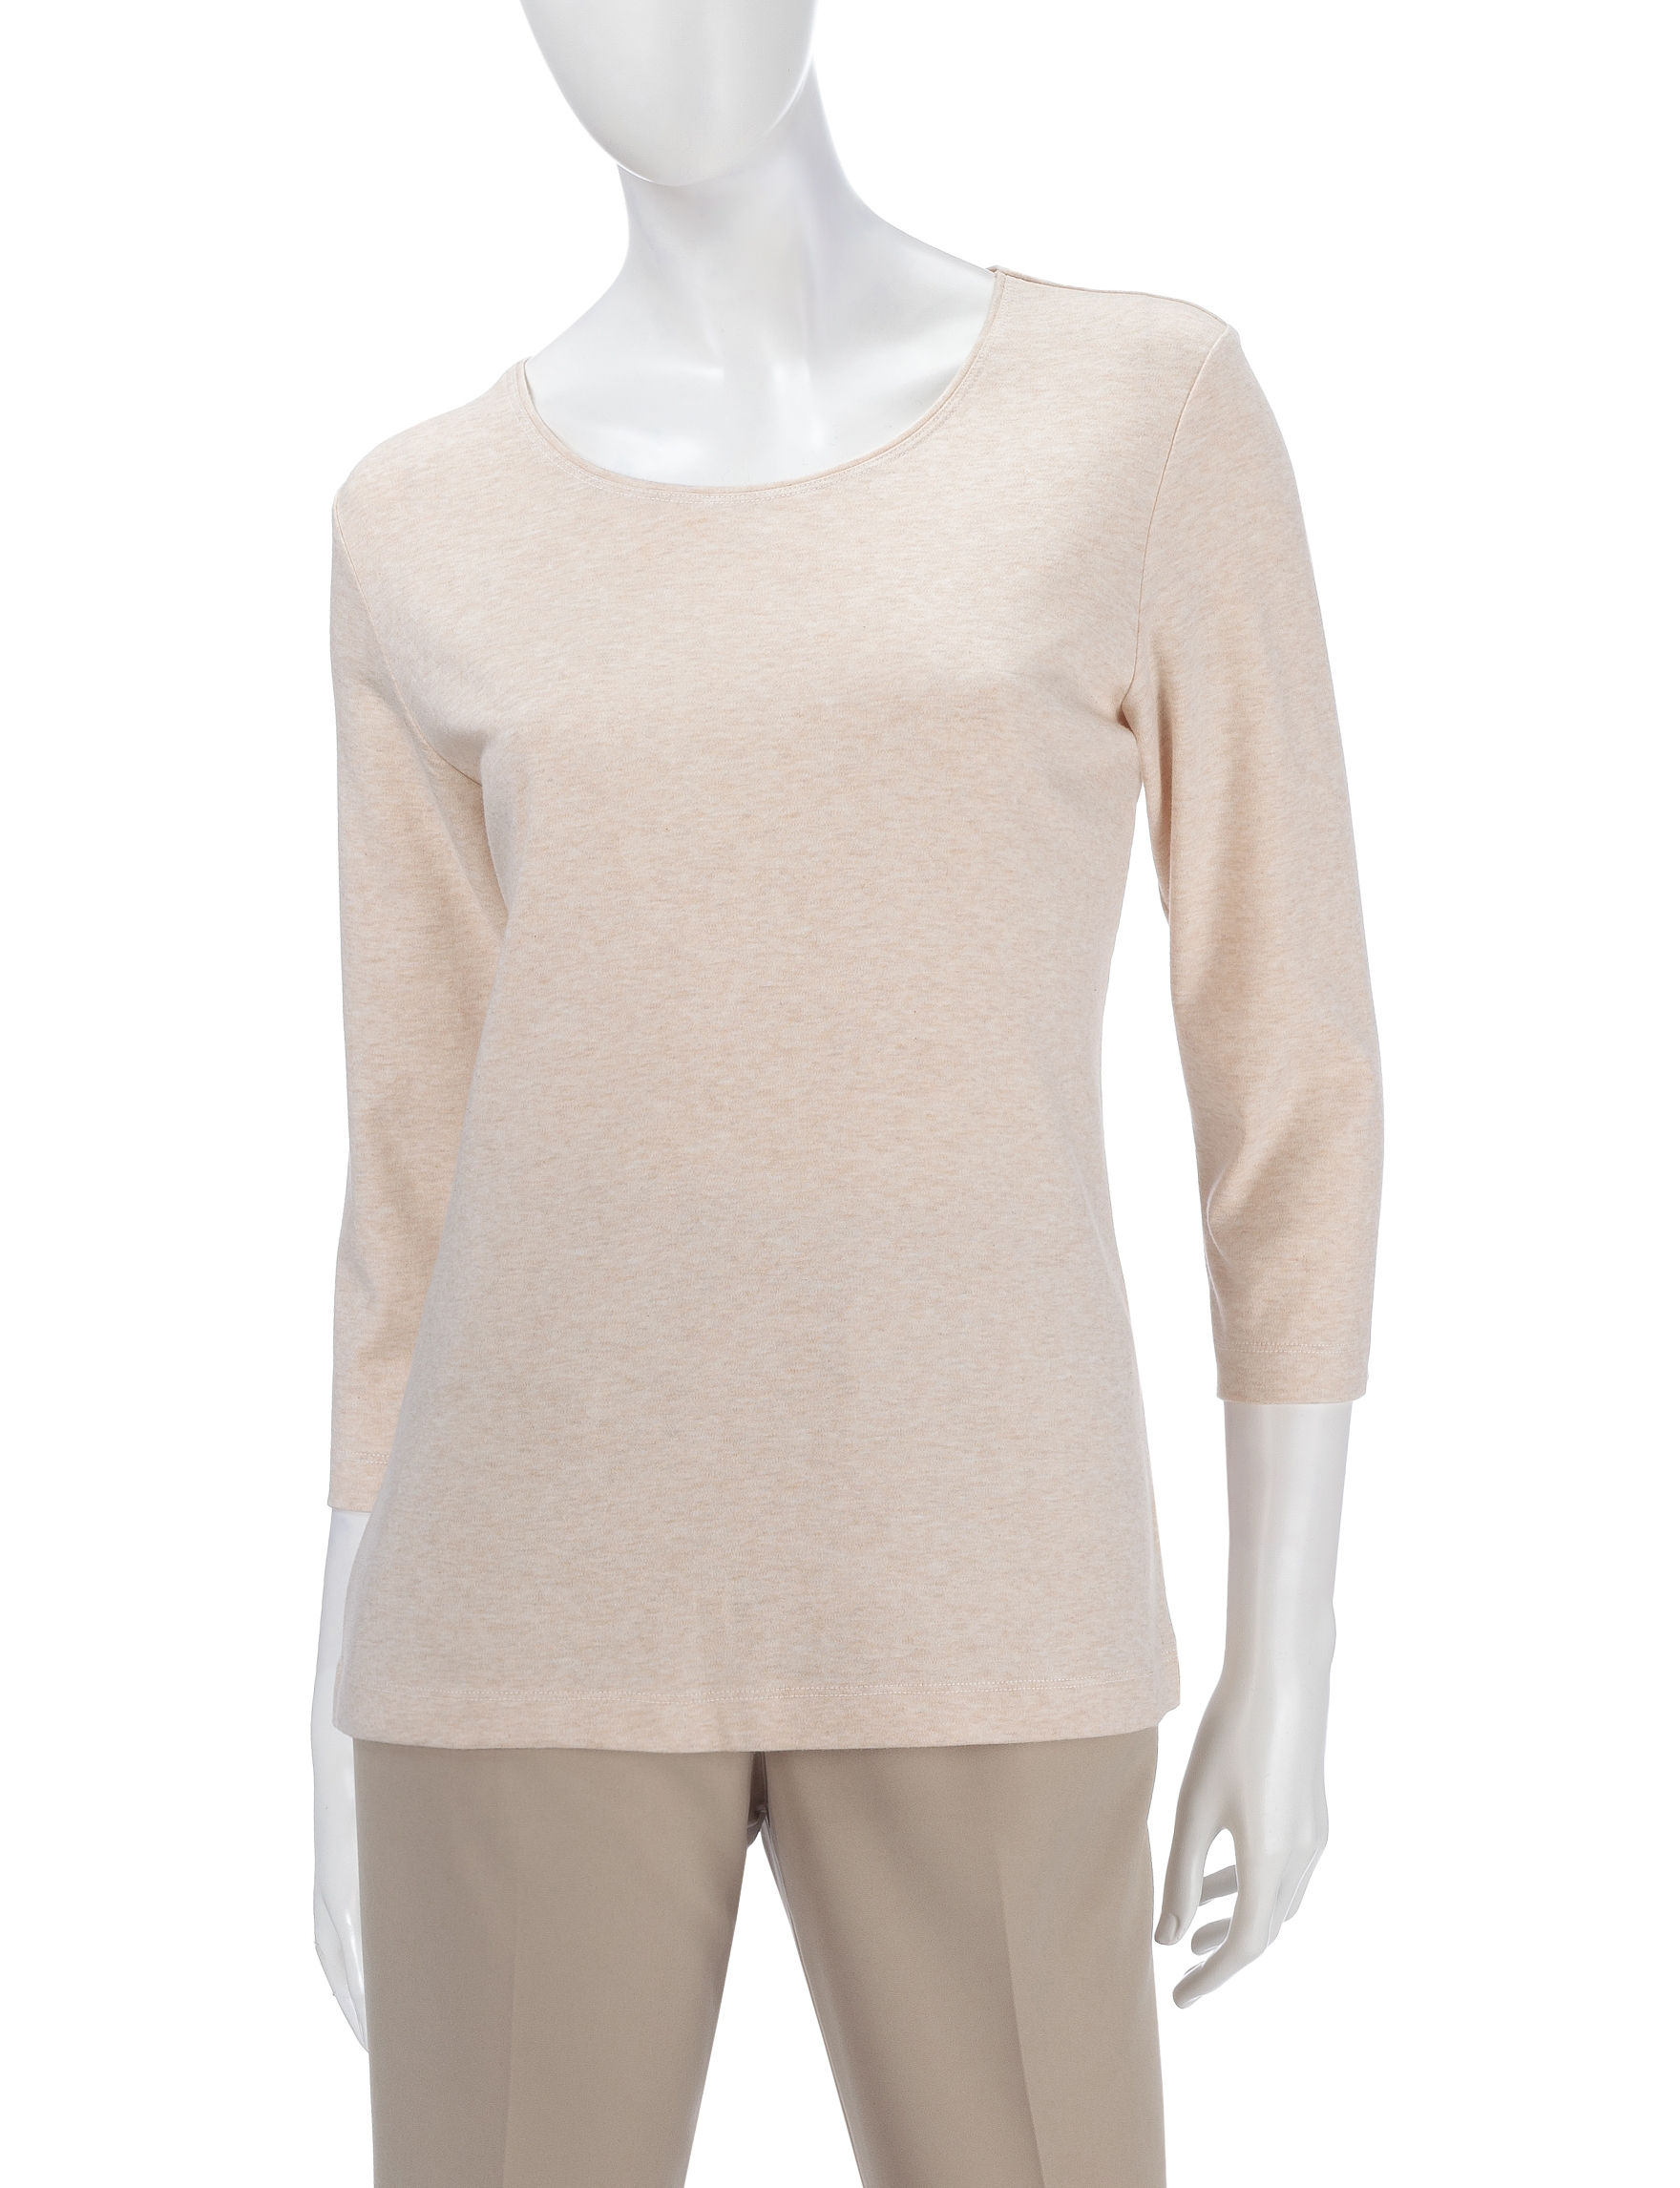 Rebecca Malone Oatmeal Pull-overs Shirts & Blouses